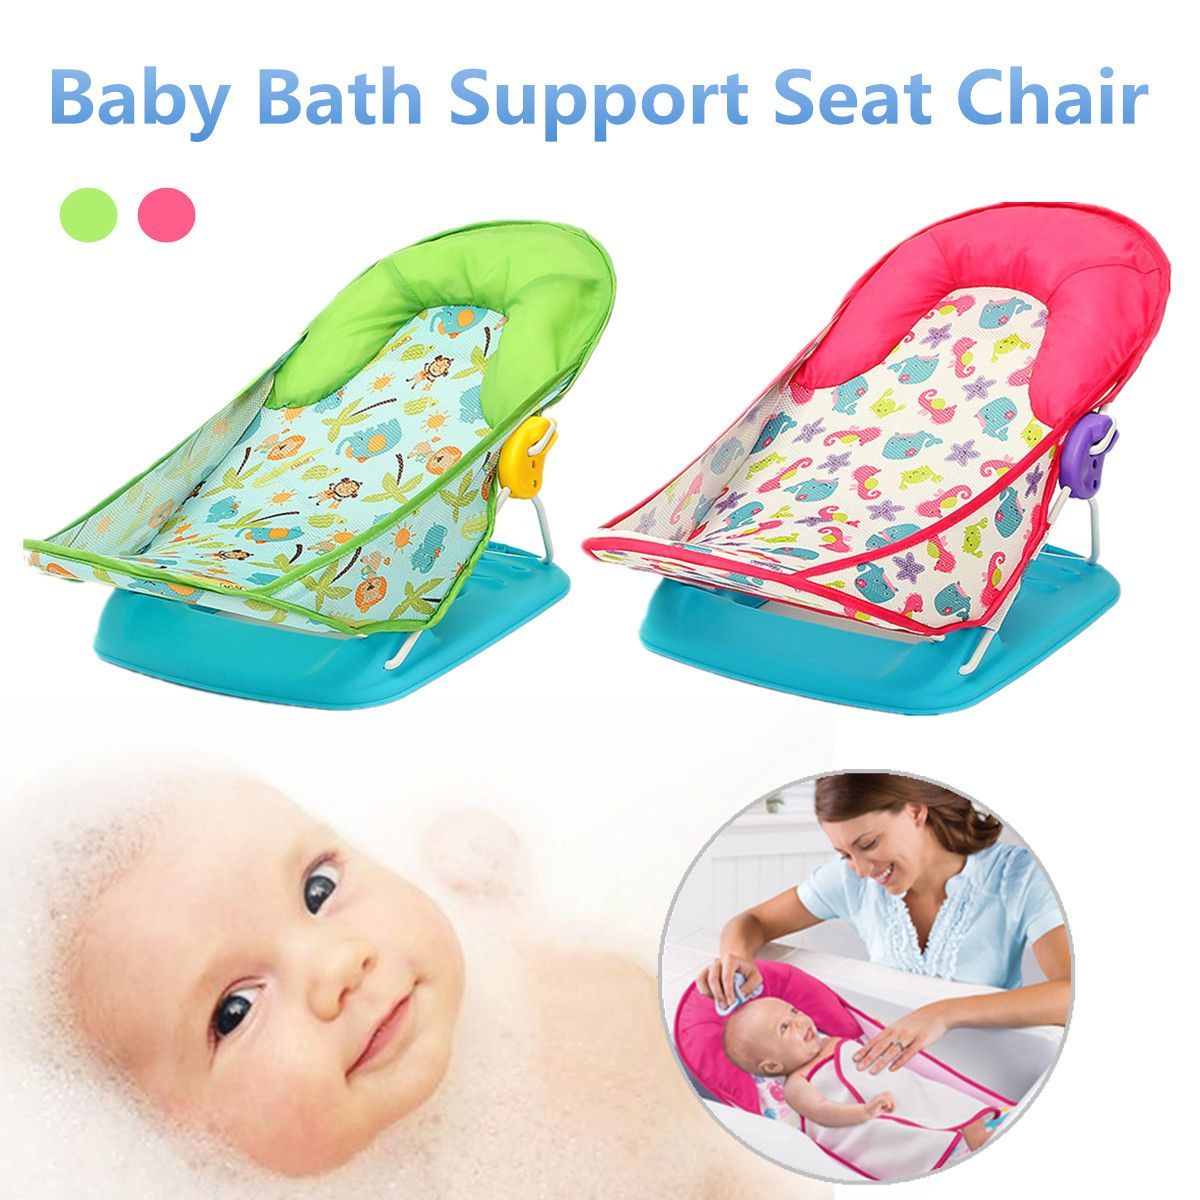 Baby Bath Support Seat Chair Foldable Deluxe Newborn Infant Safety ...